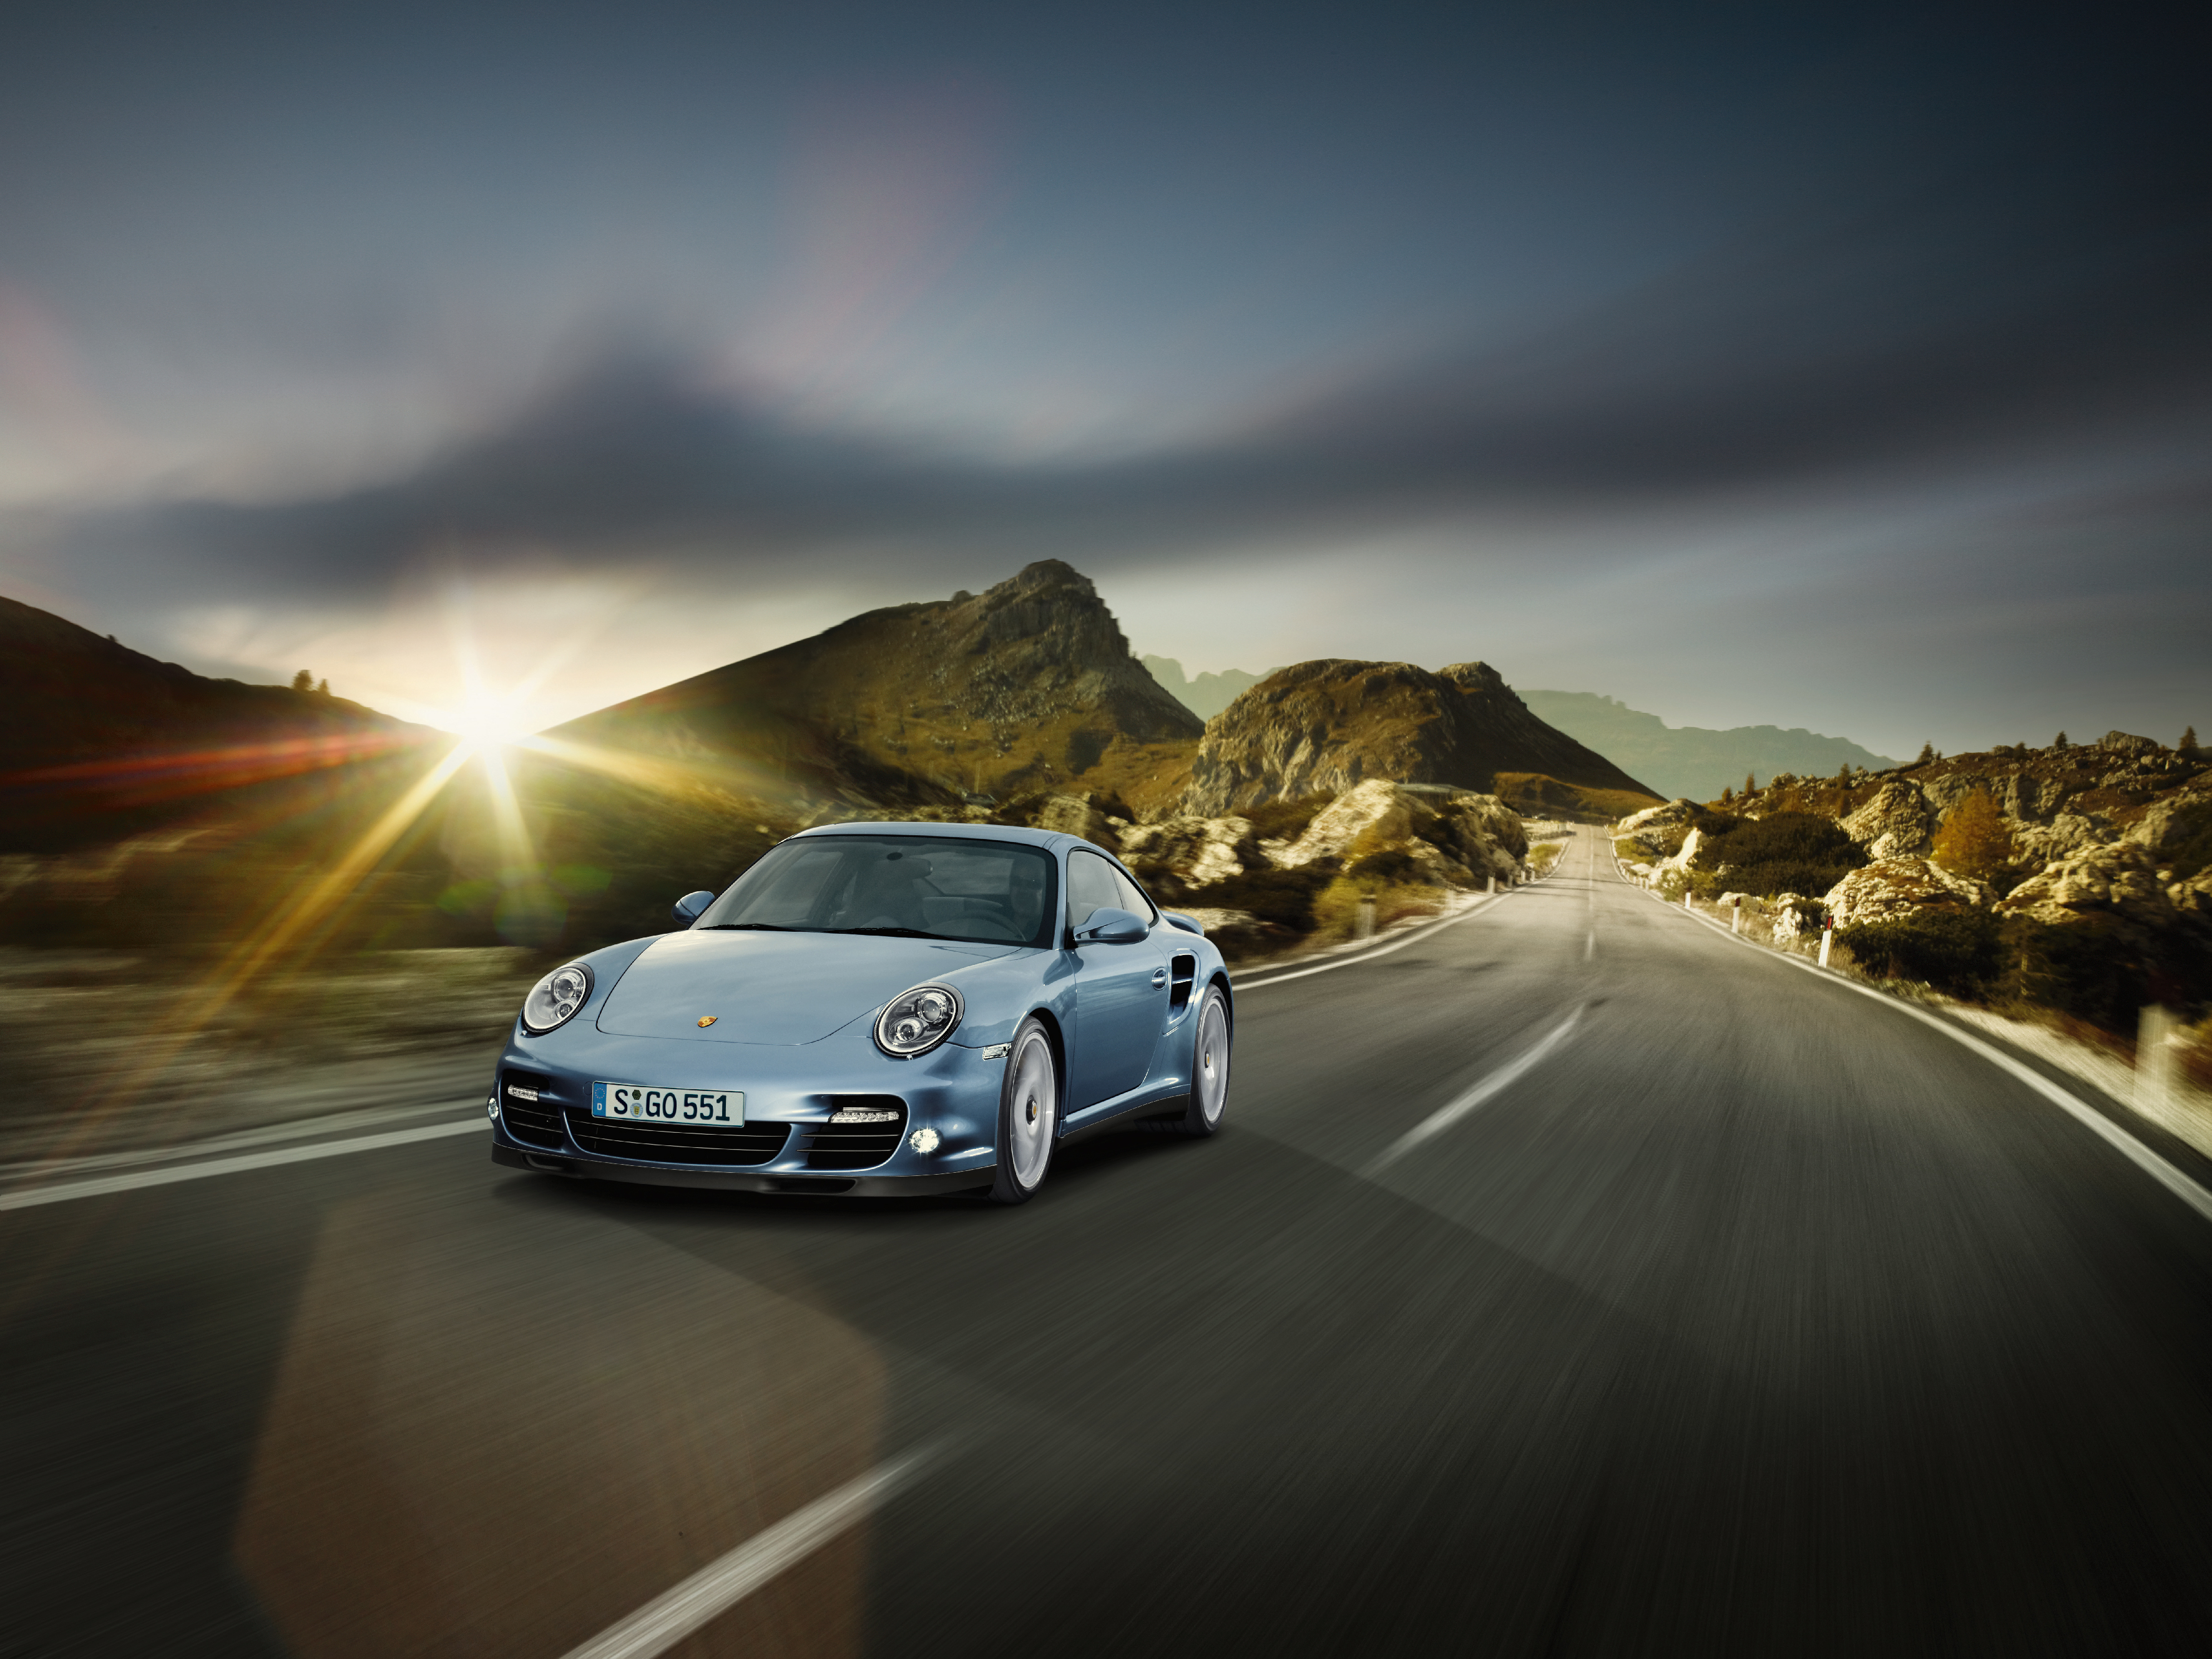 2010 Porsche 911 Turbo S Coupe